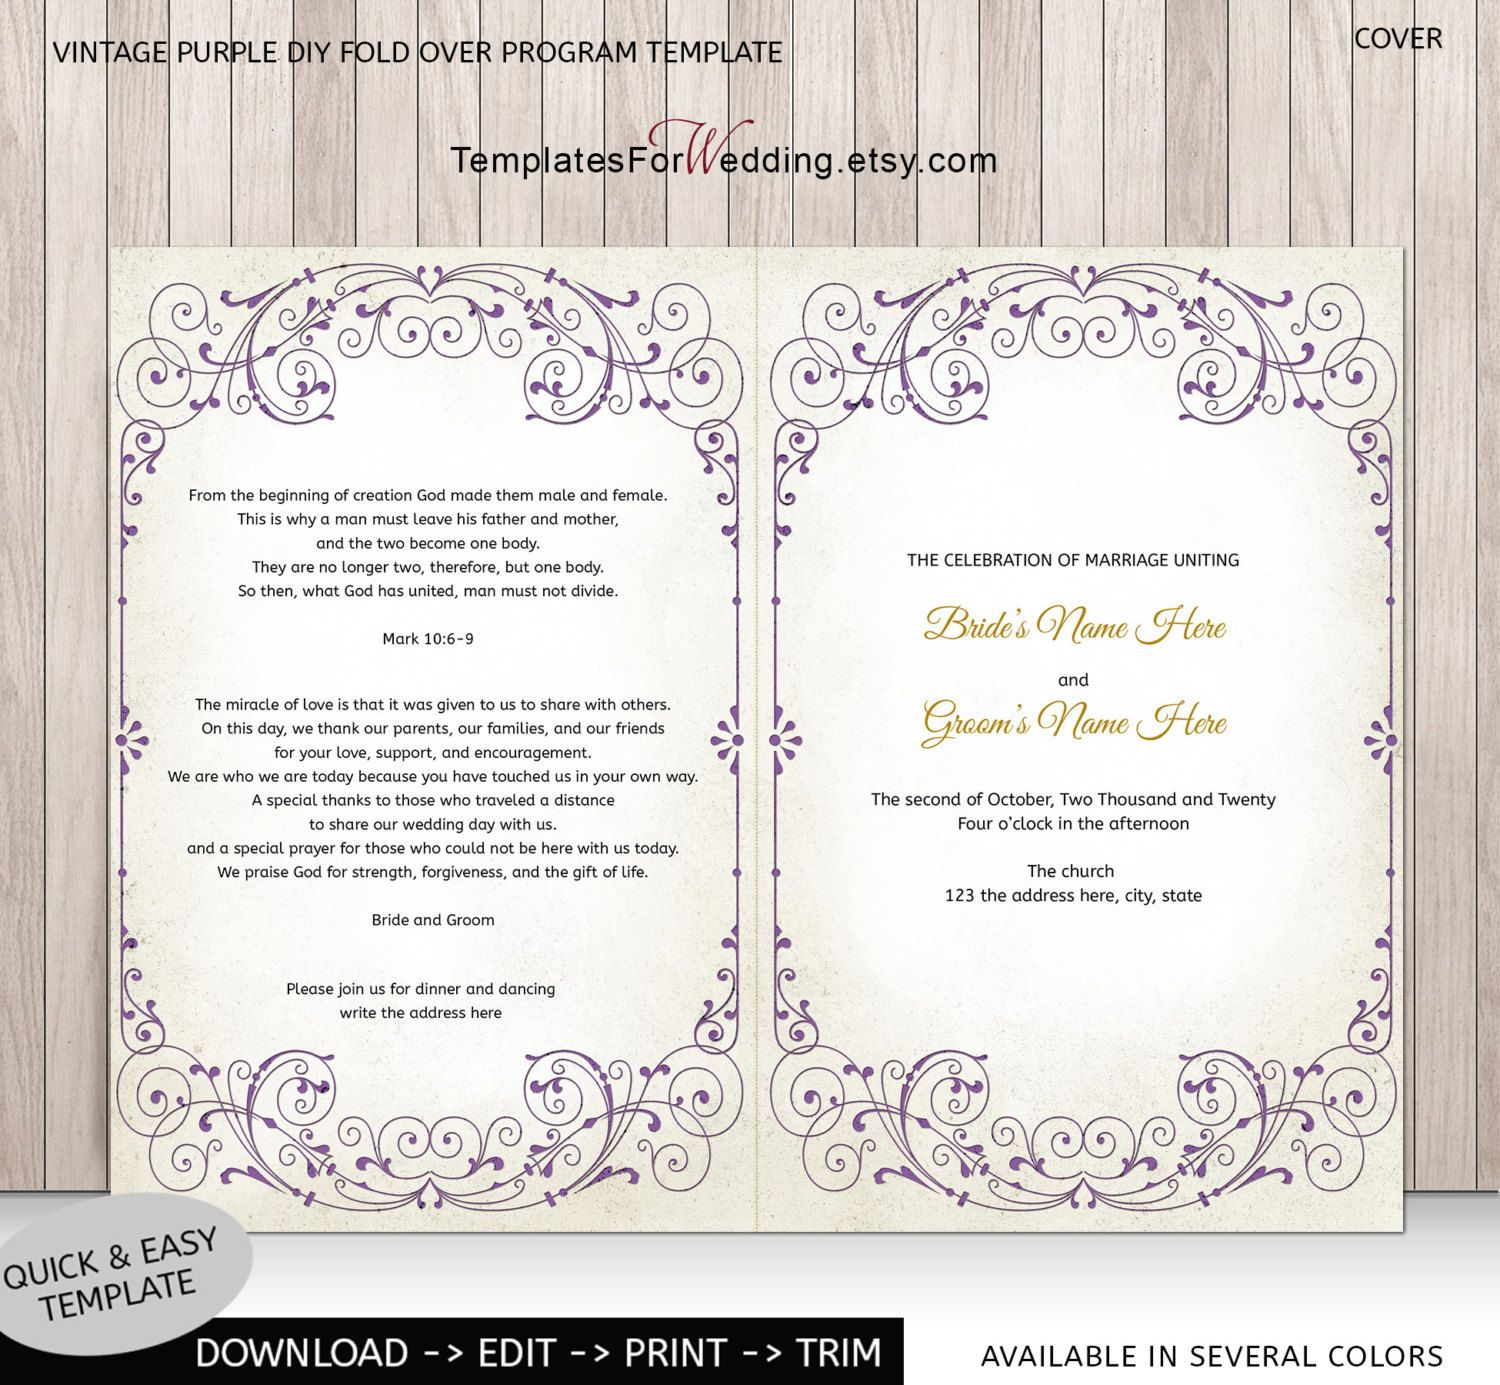 diy wedding program template ceremony program instant. Black Bedroom Furniture Sets. Home Design Ideas